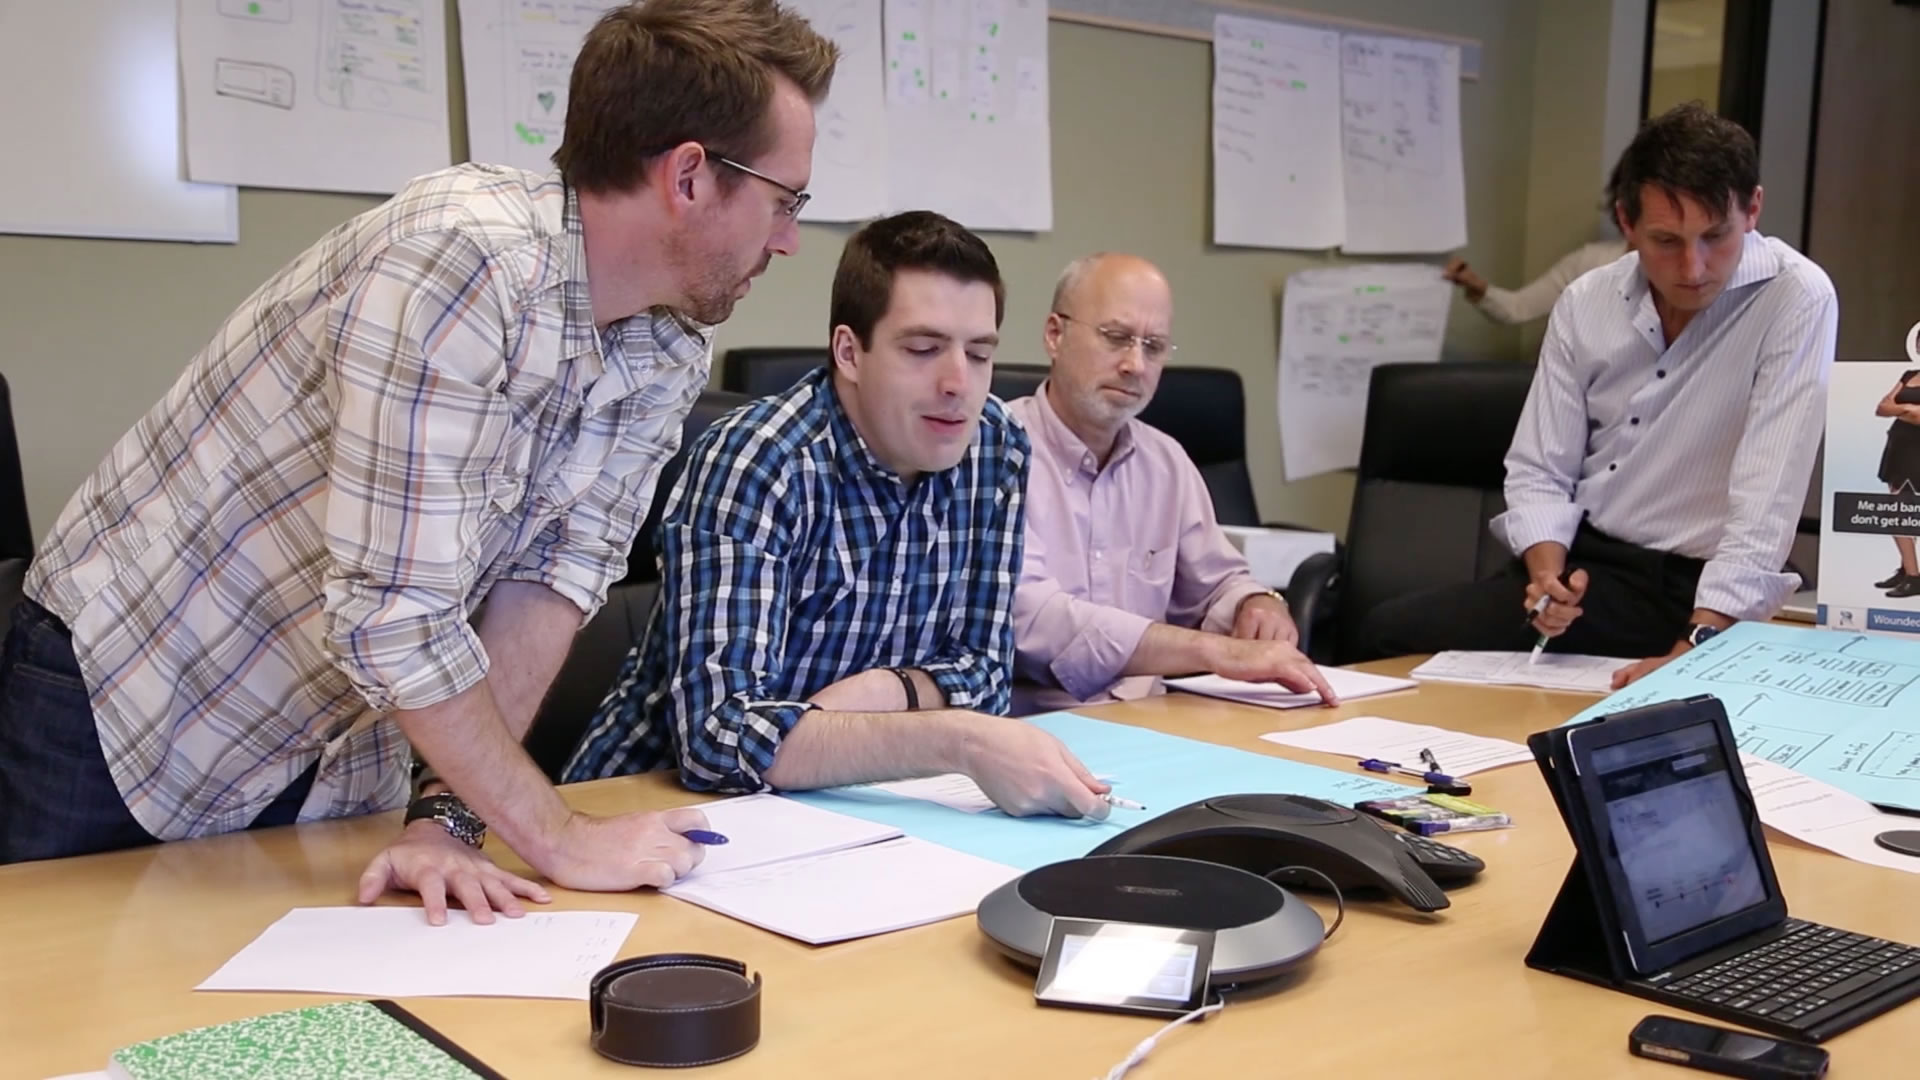 People discussing at a conference table